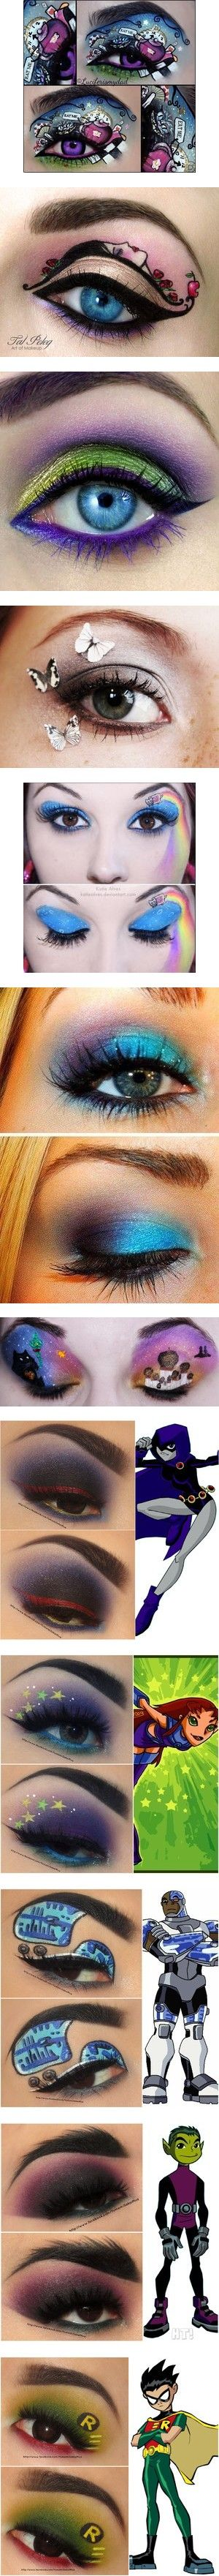 Eye Makeup!! by heatherchristine1408 on Polyvore featuring women's fashion, costumes, makeup, beauty, eyes, mad hatter costume, mad hatter halloween costume, beauty products, eye makeup and eyeshadow